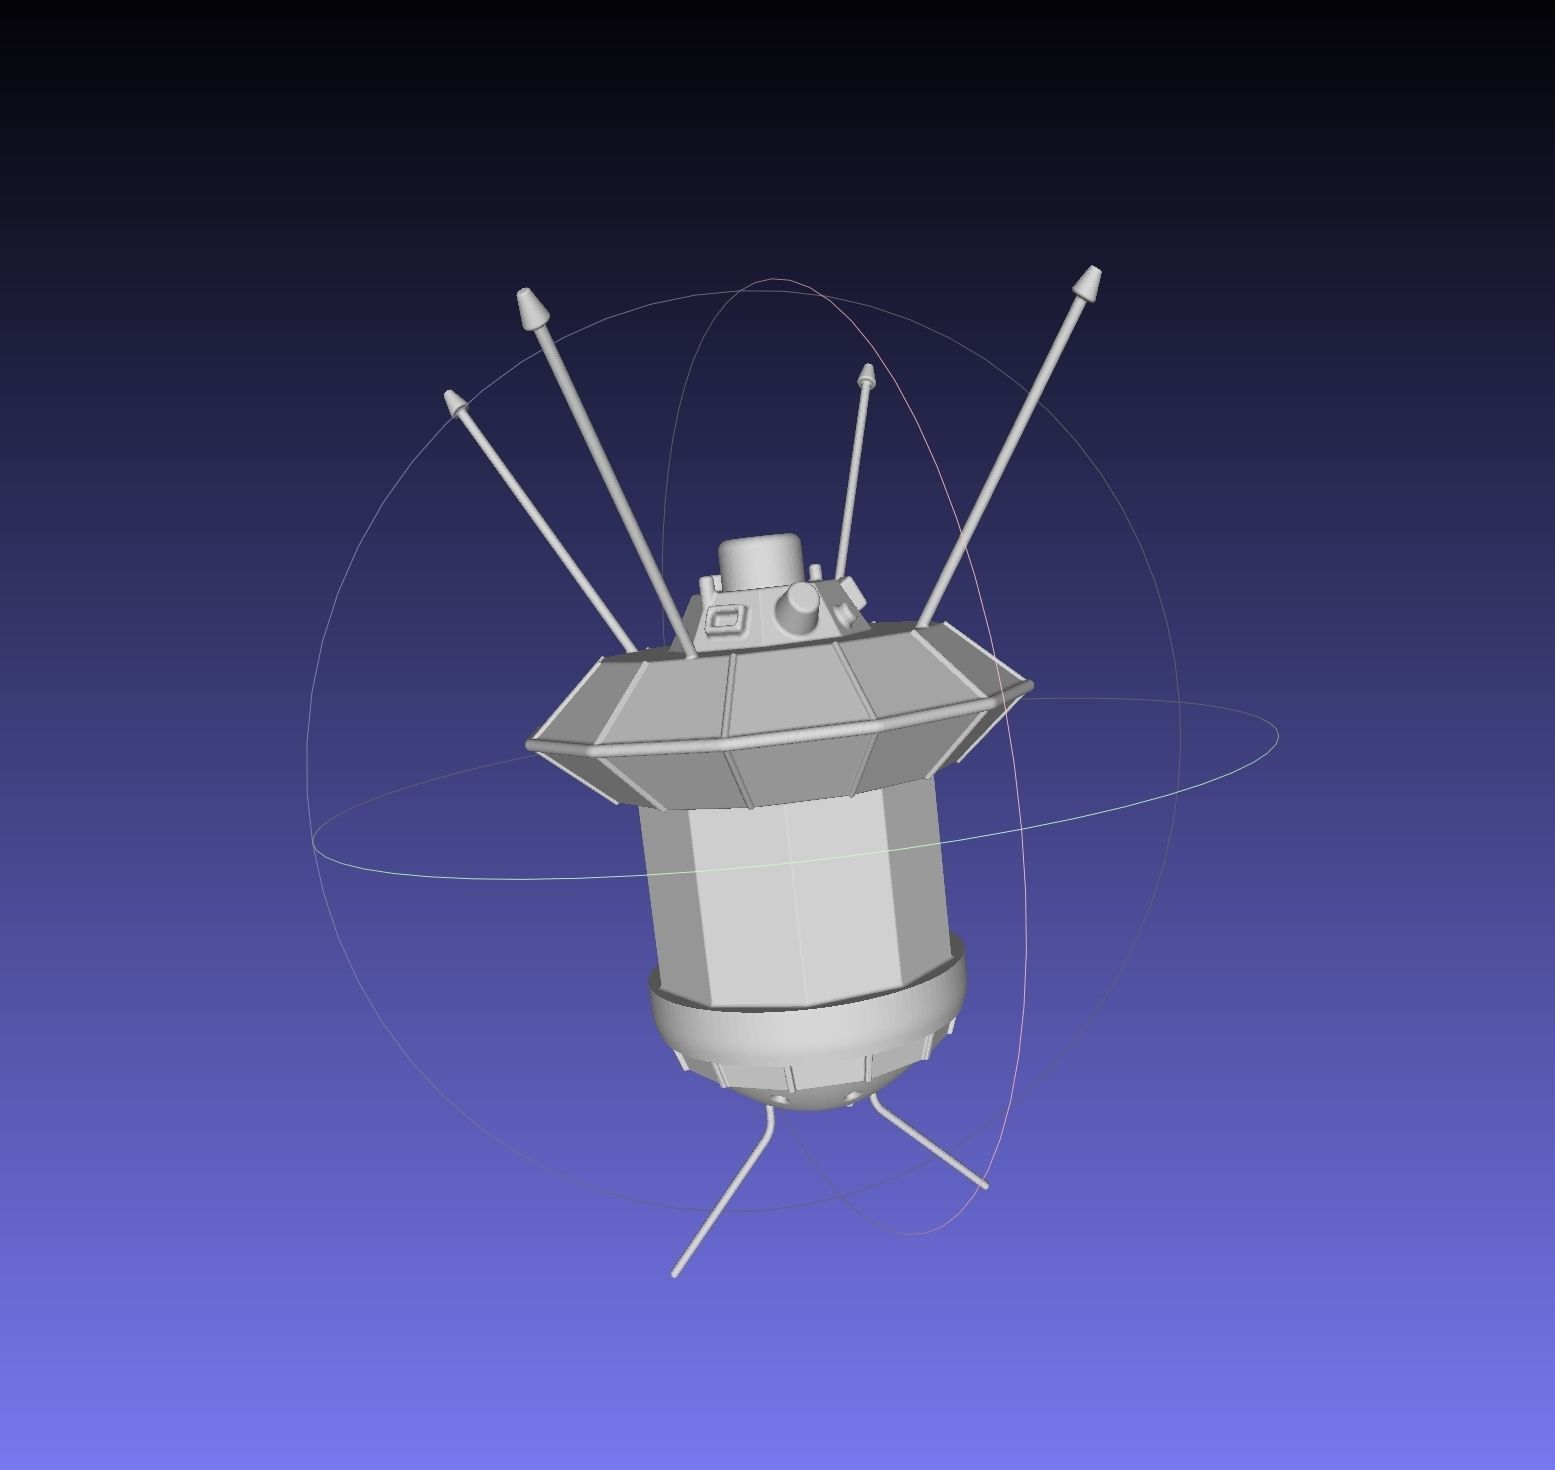 Simple Luna 3 Spaceprobe Printable Miniature